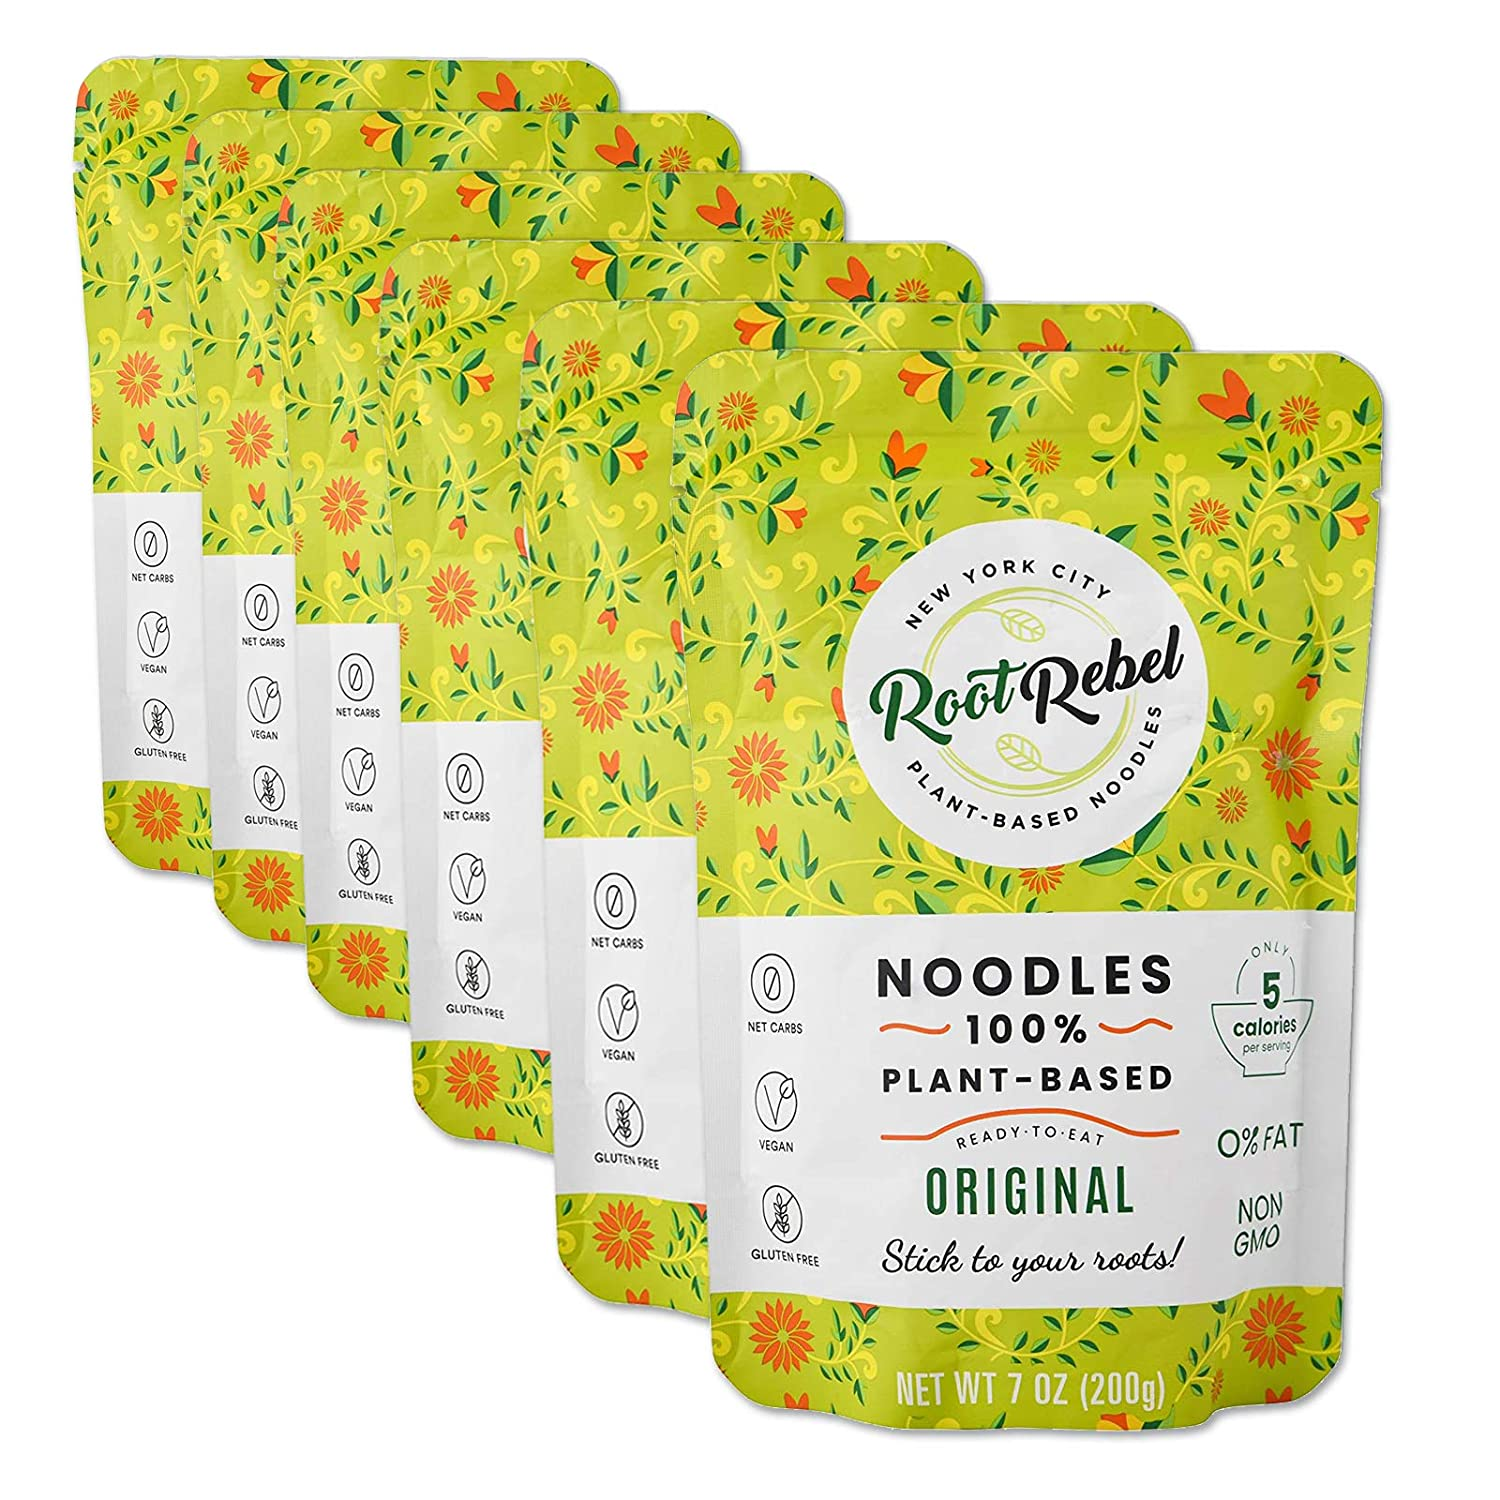 Root Rebel 100% Plant-Based Shirataki Style Noodles 6 Pack, 0 Carbs, Low Calorie, Vegan, Gluten-Free, Odorless, Ready in 2 Minutes, No Need to Rinse!